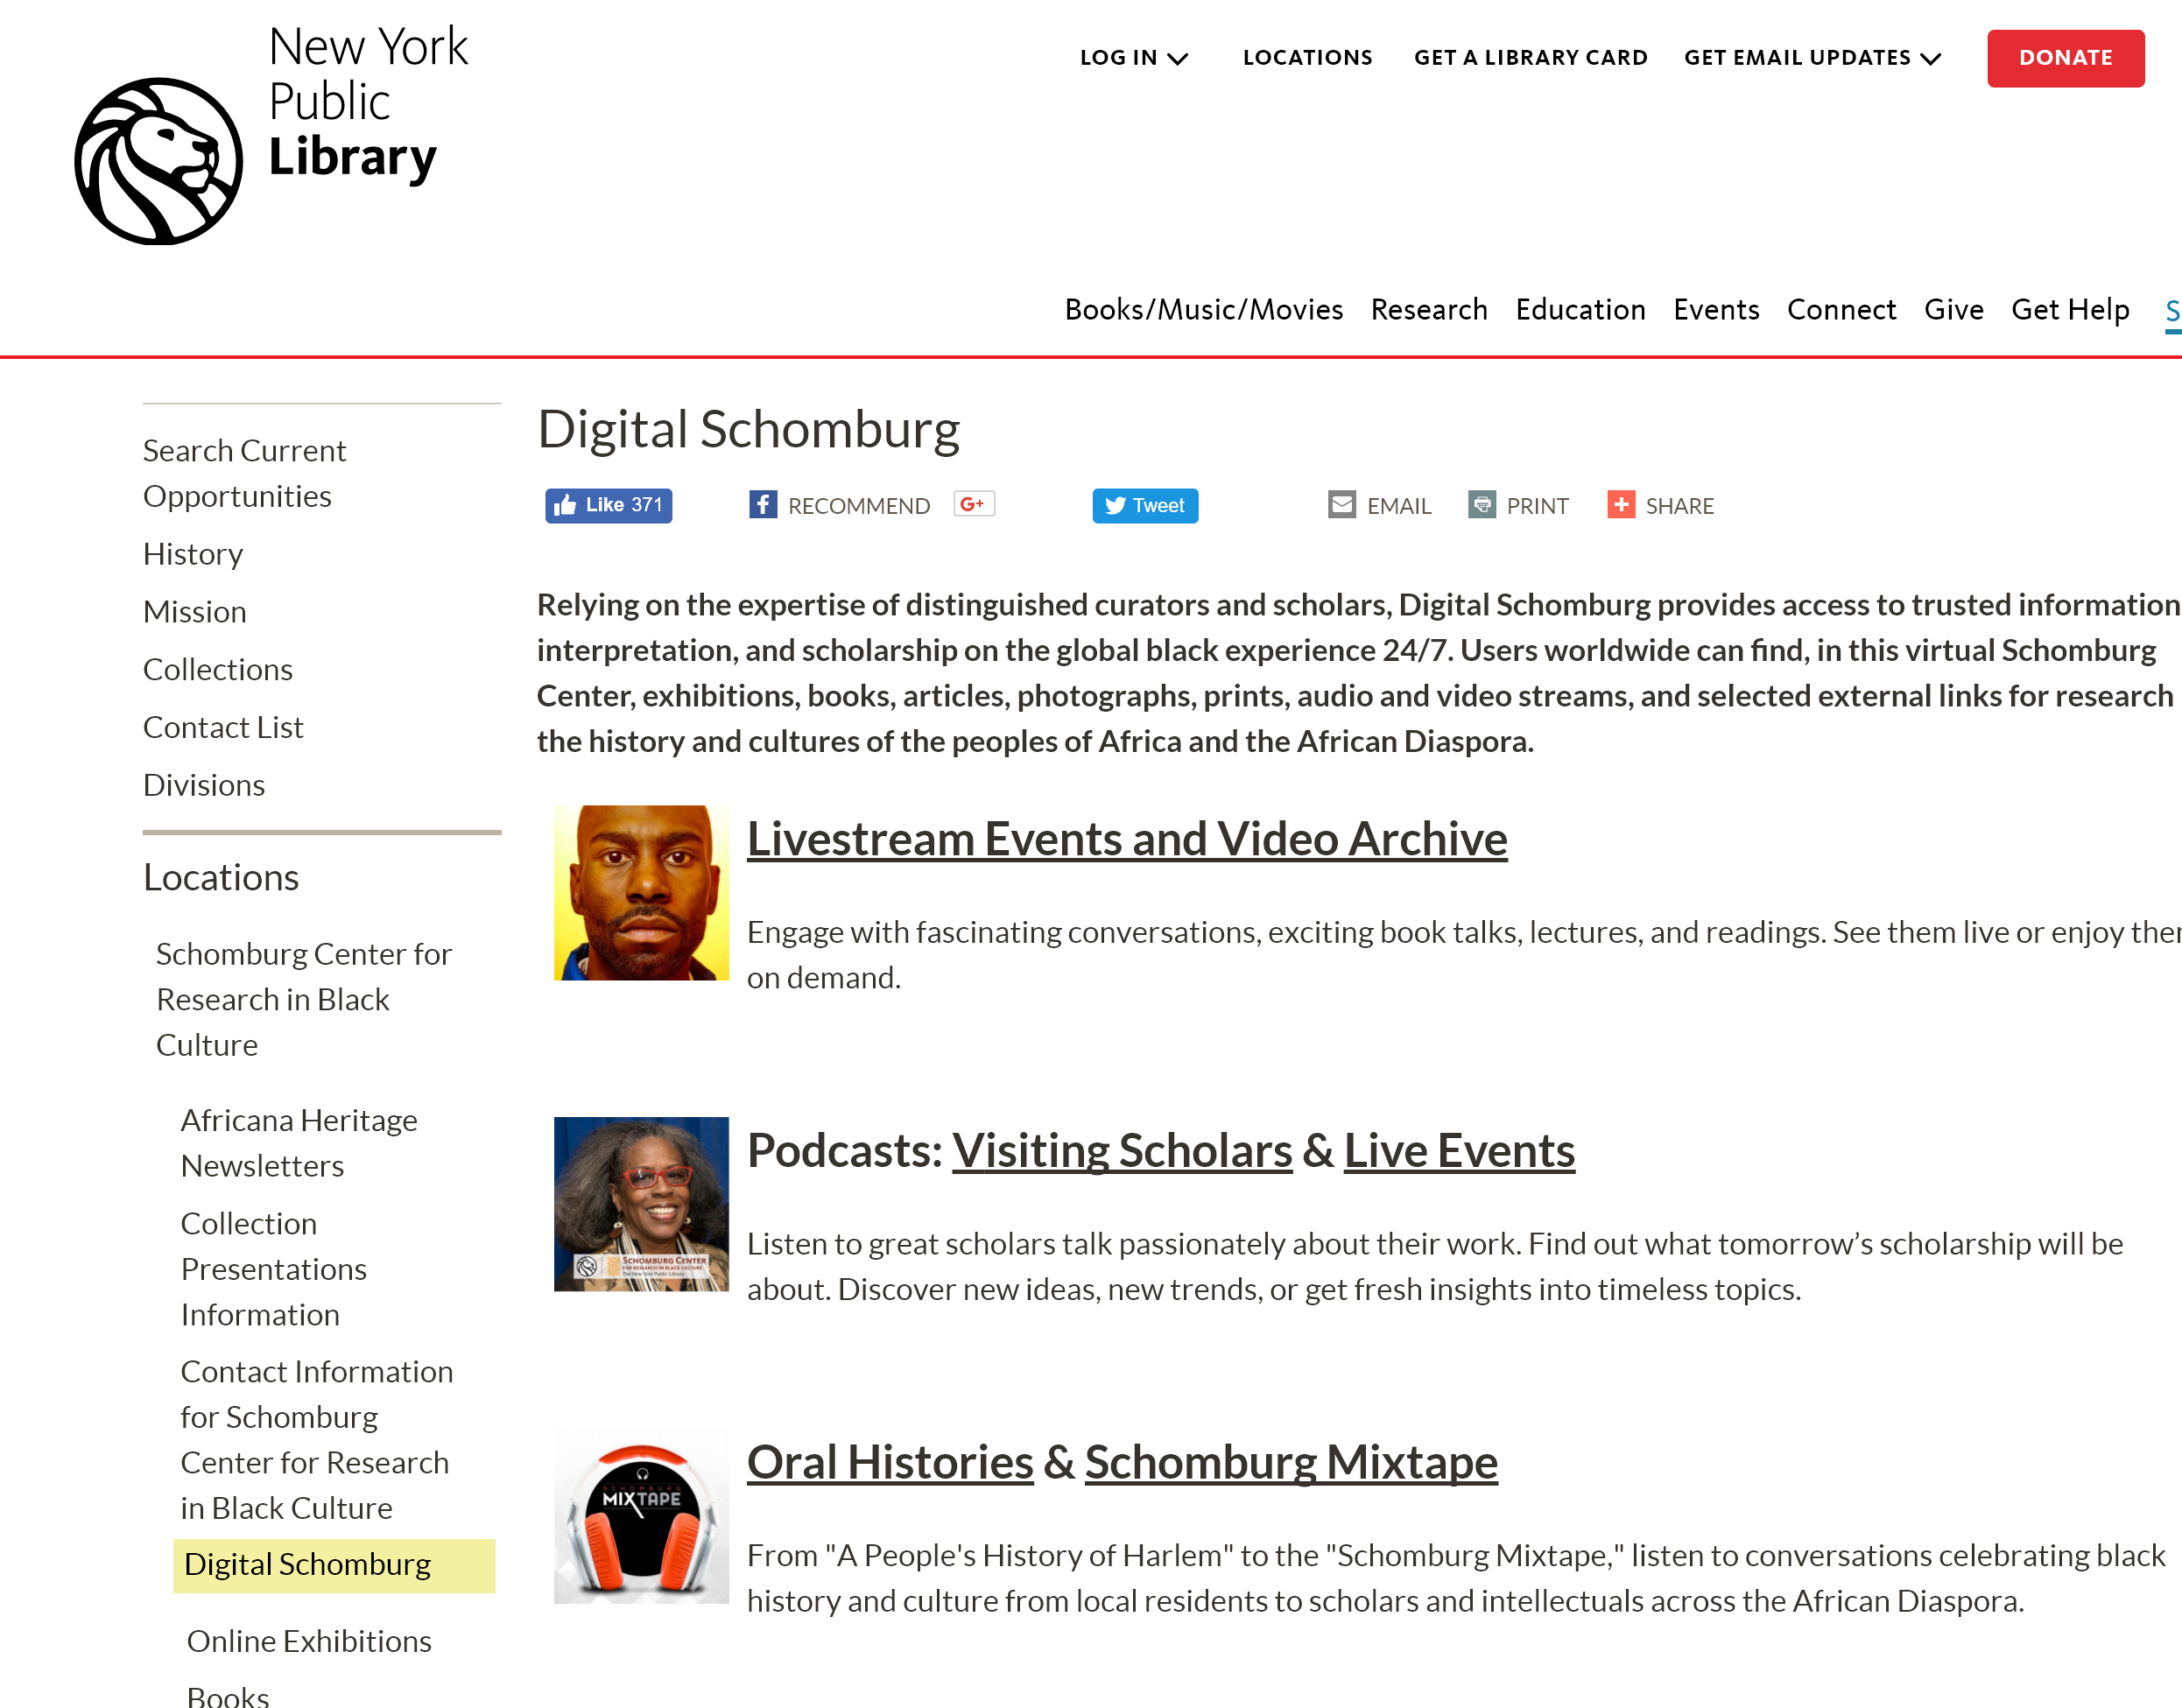 Screenshot of Digital Schomburg